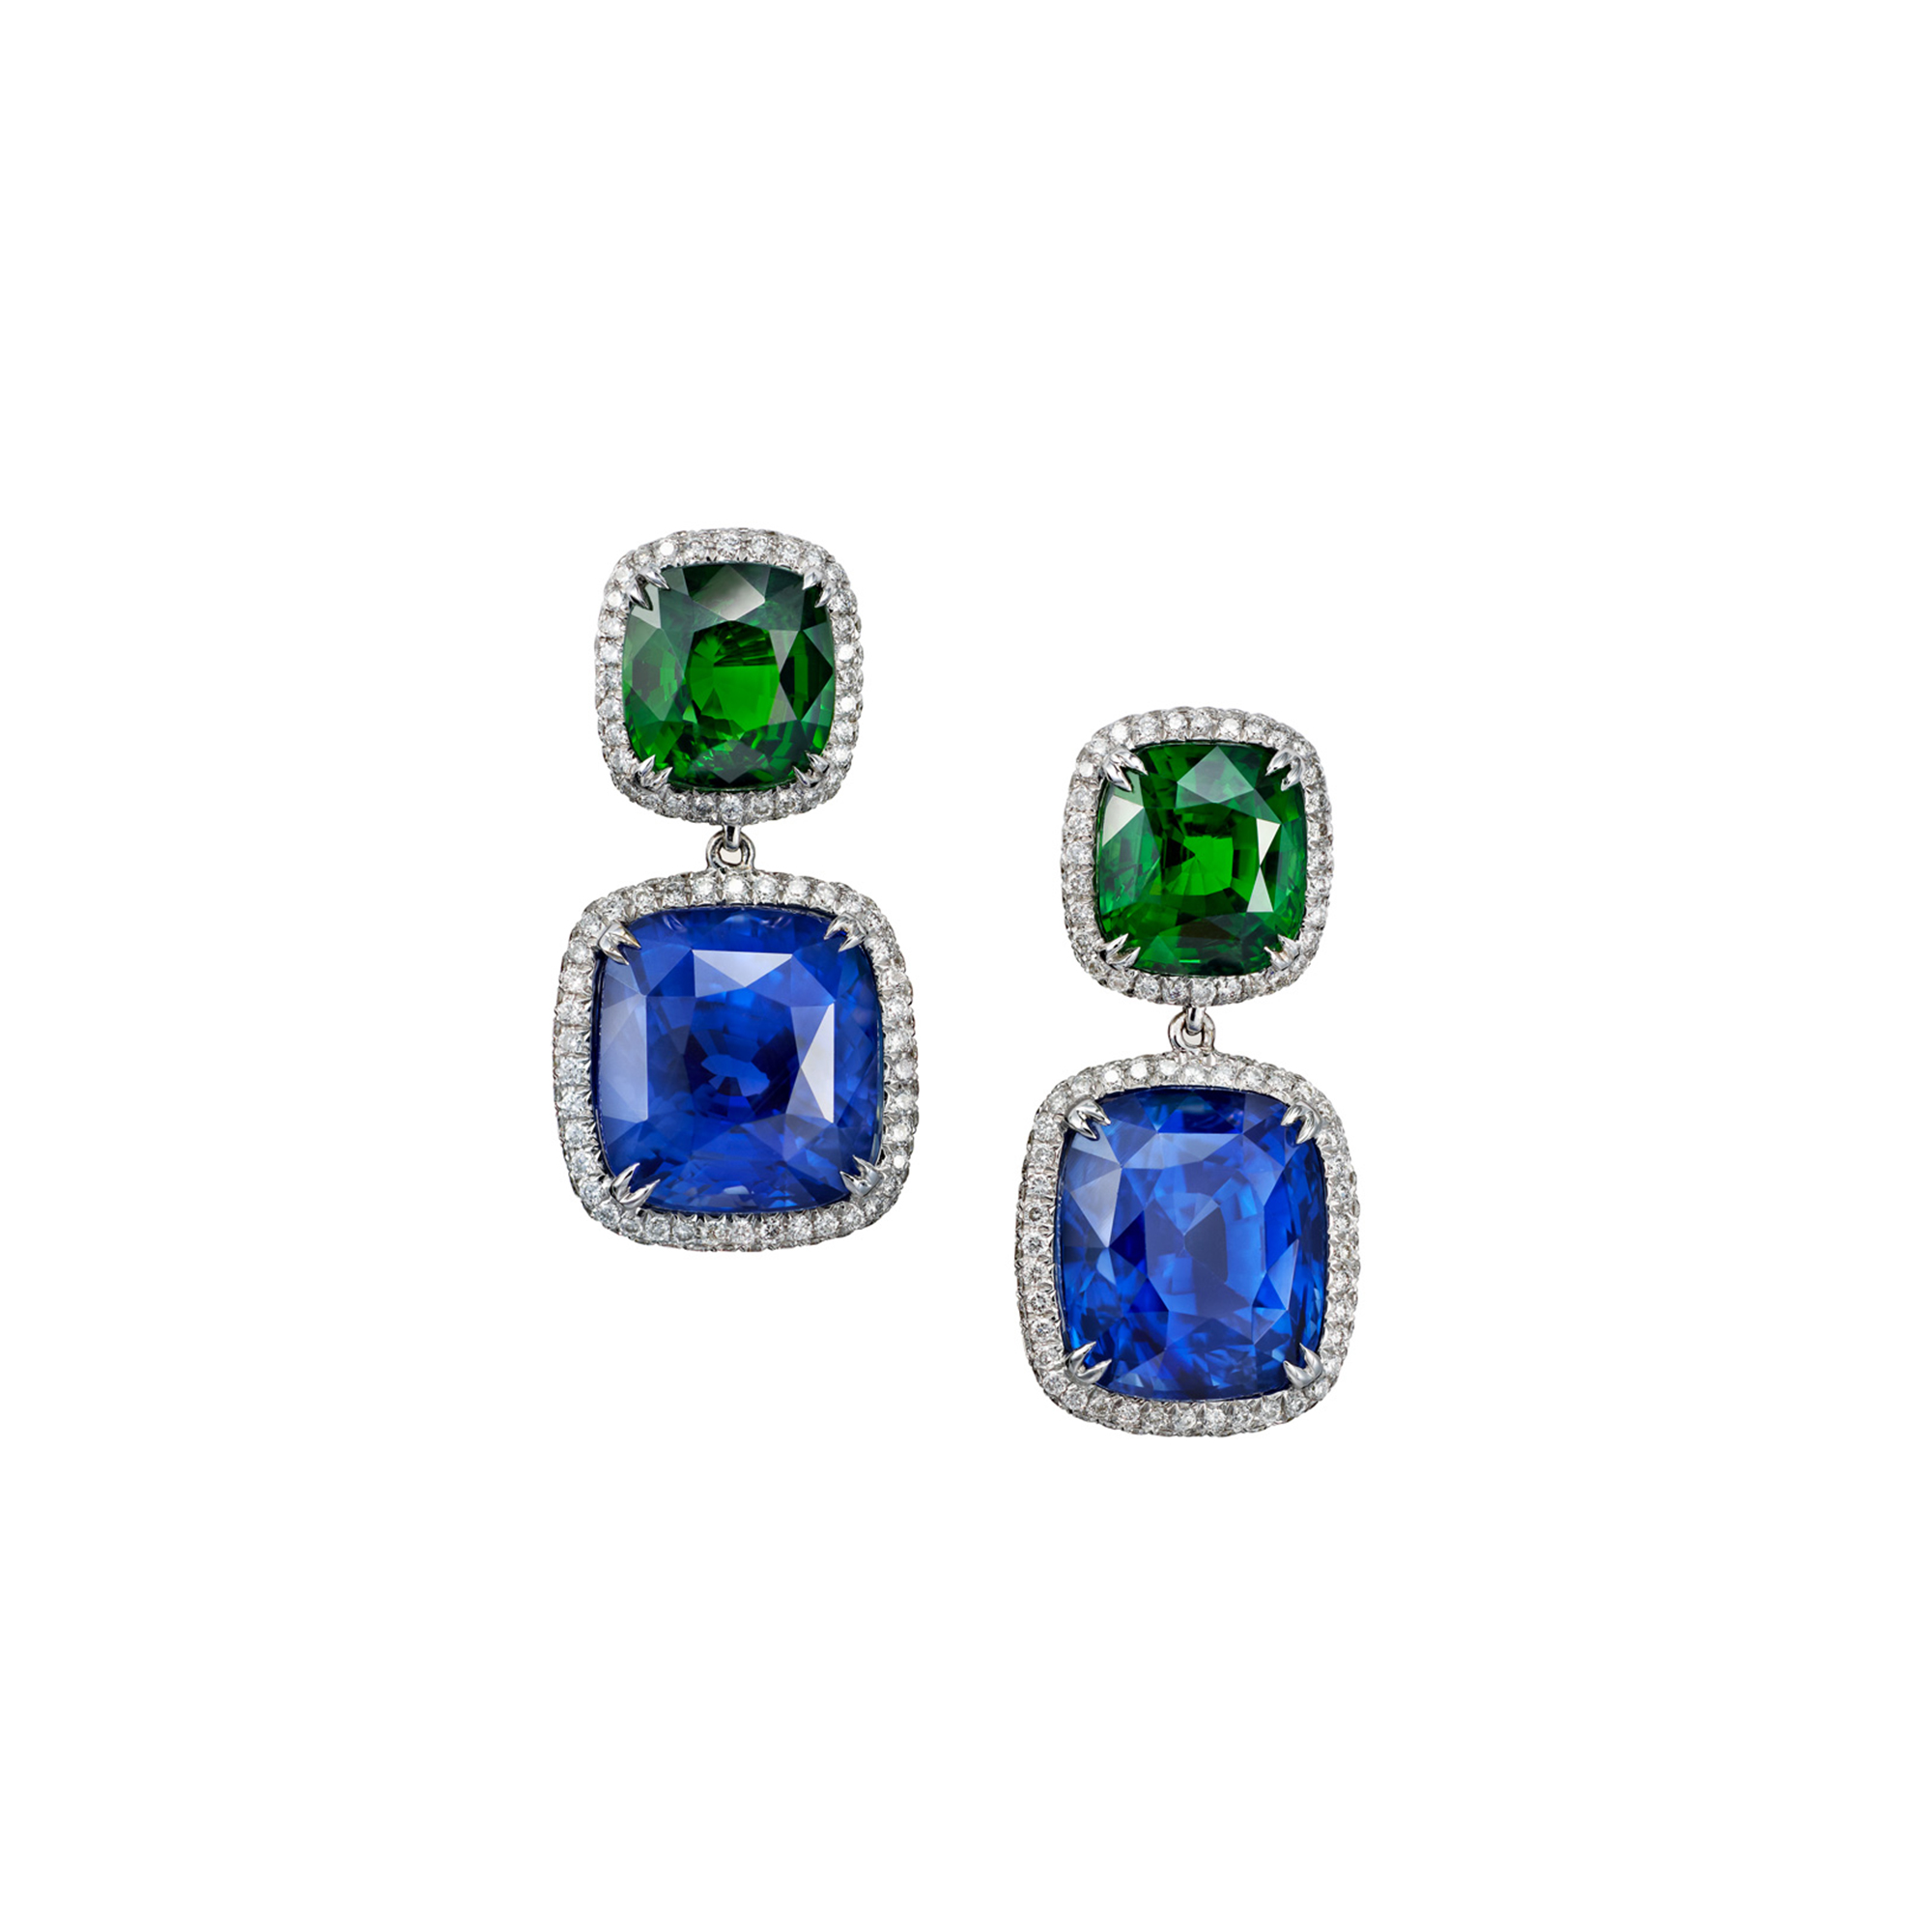 ct martini collections products set jewelry cttw earrings color gold vir mar white tanzanite stud